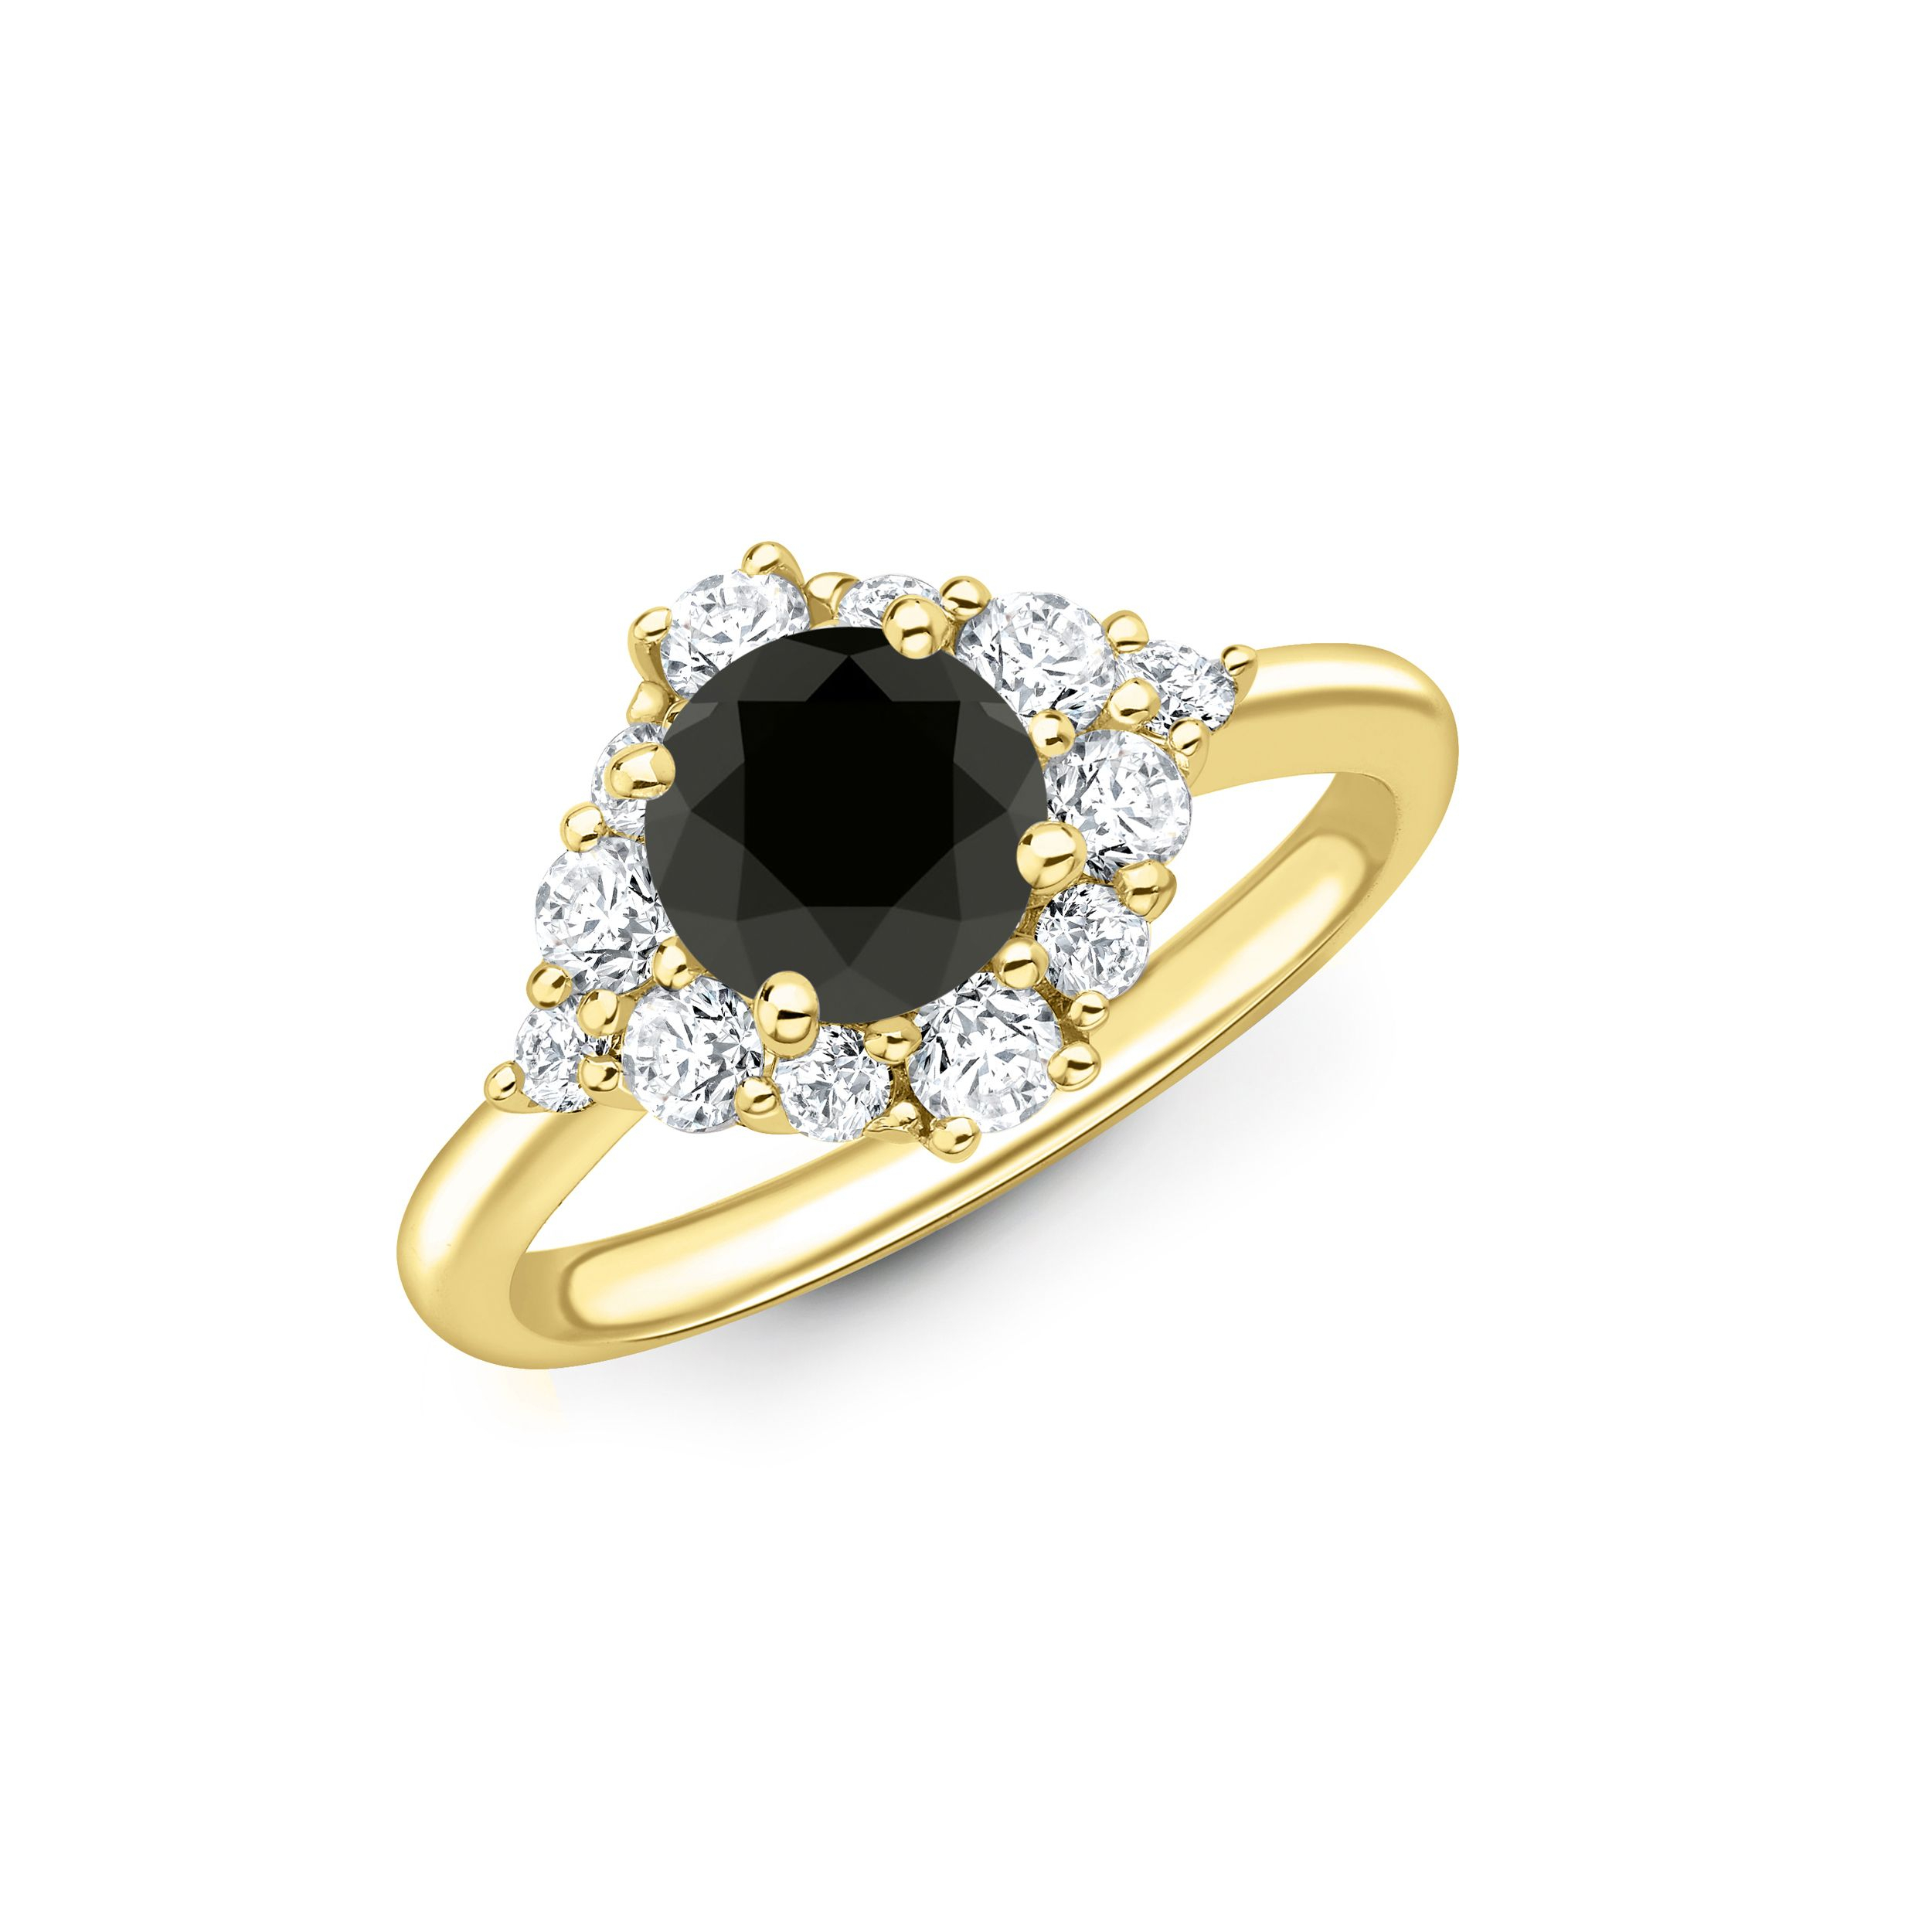 Shop For Sparkling Cluster Style Halo Engagement Ring With Black Diamond | Abelini™ Pertaining To Current Sparkling Halo Rings (View 9 of 25)